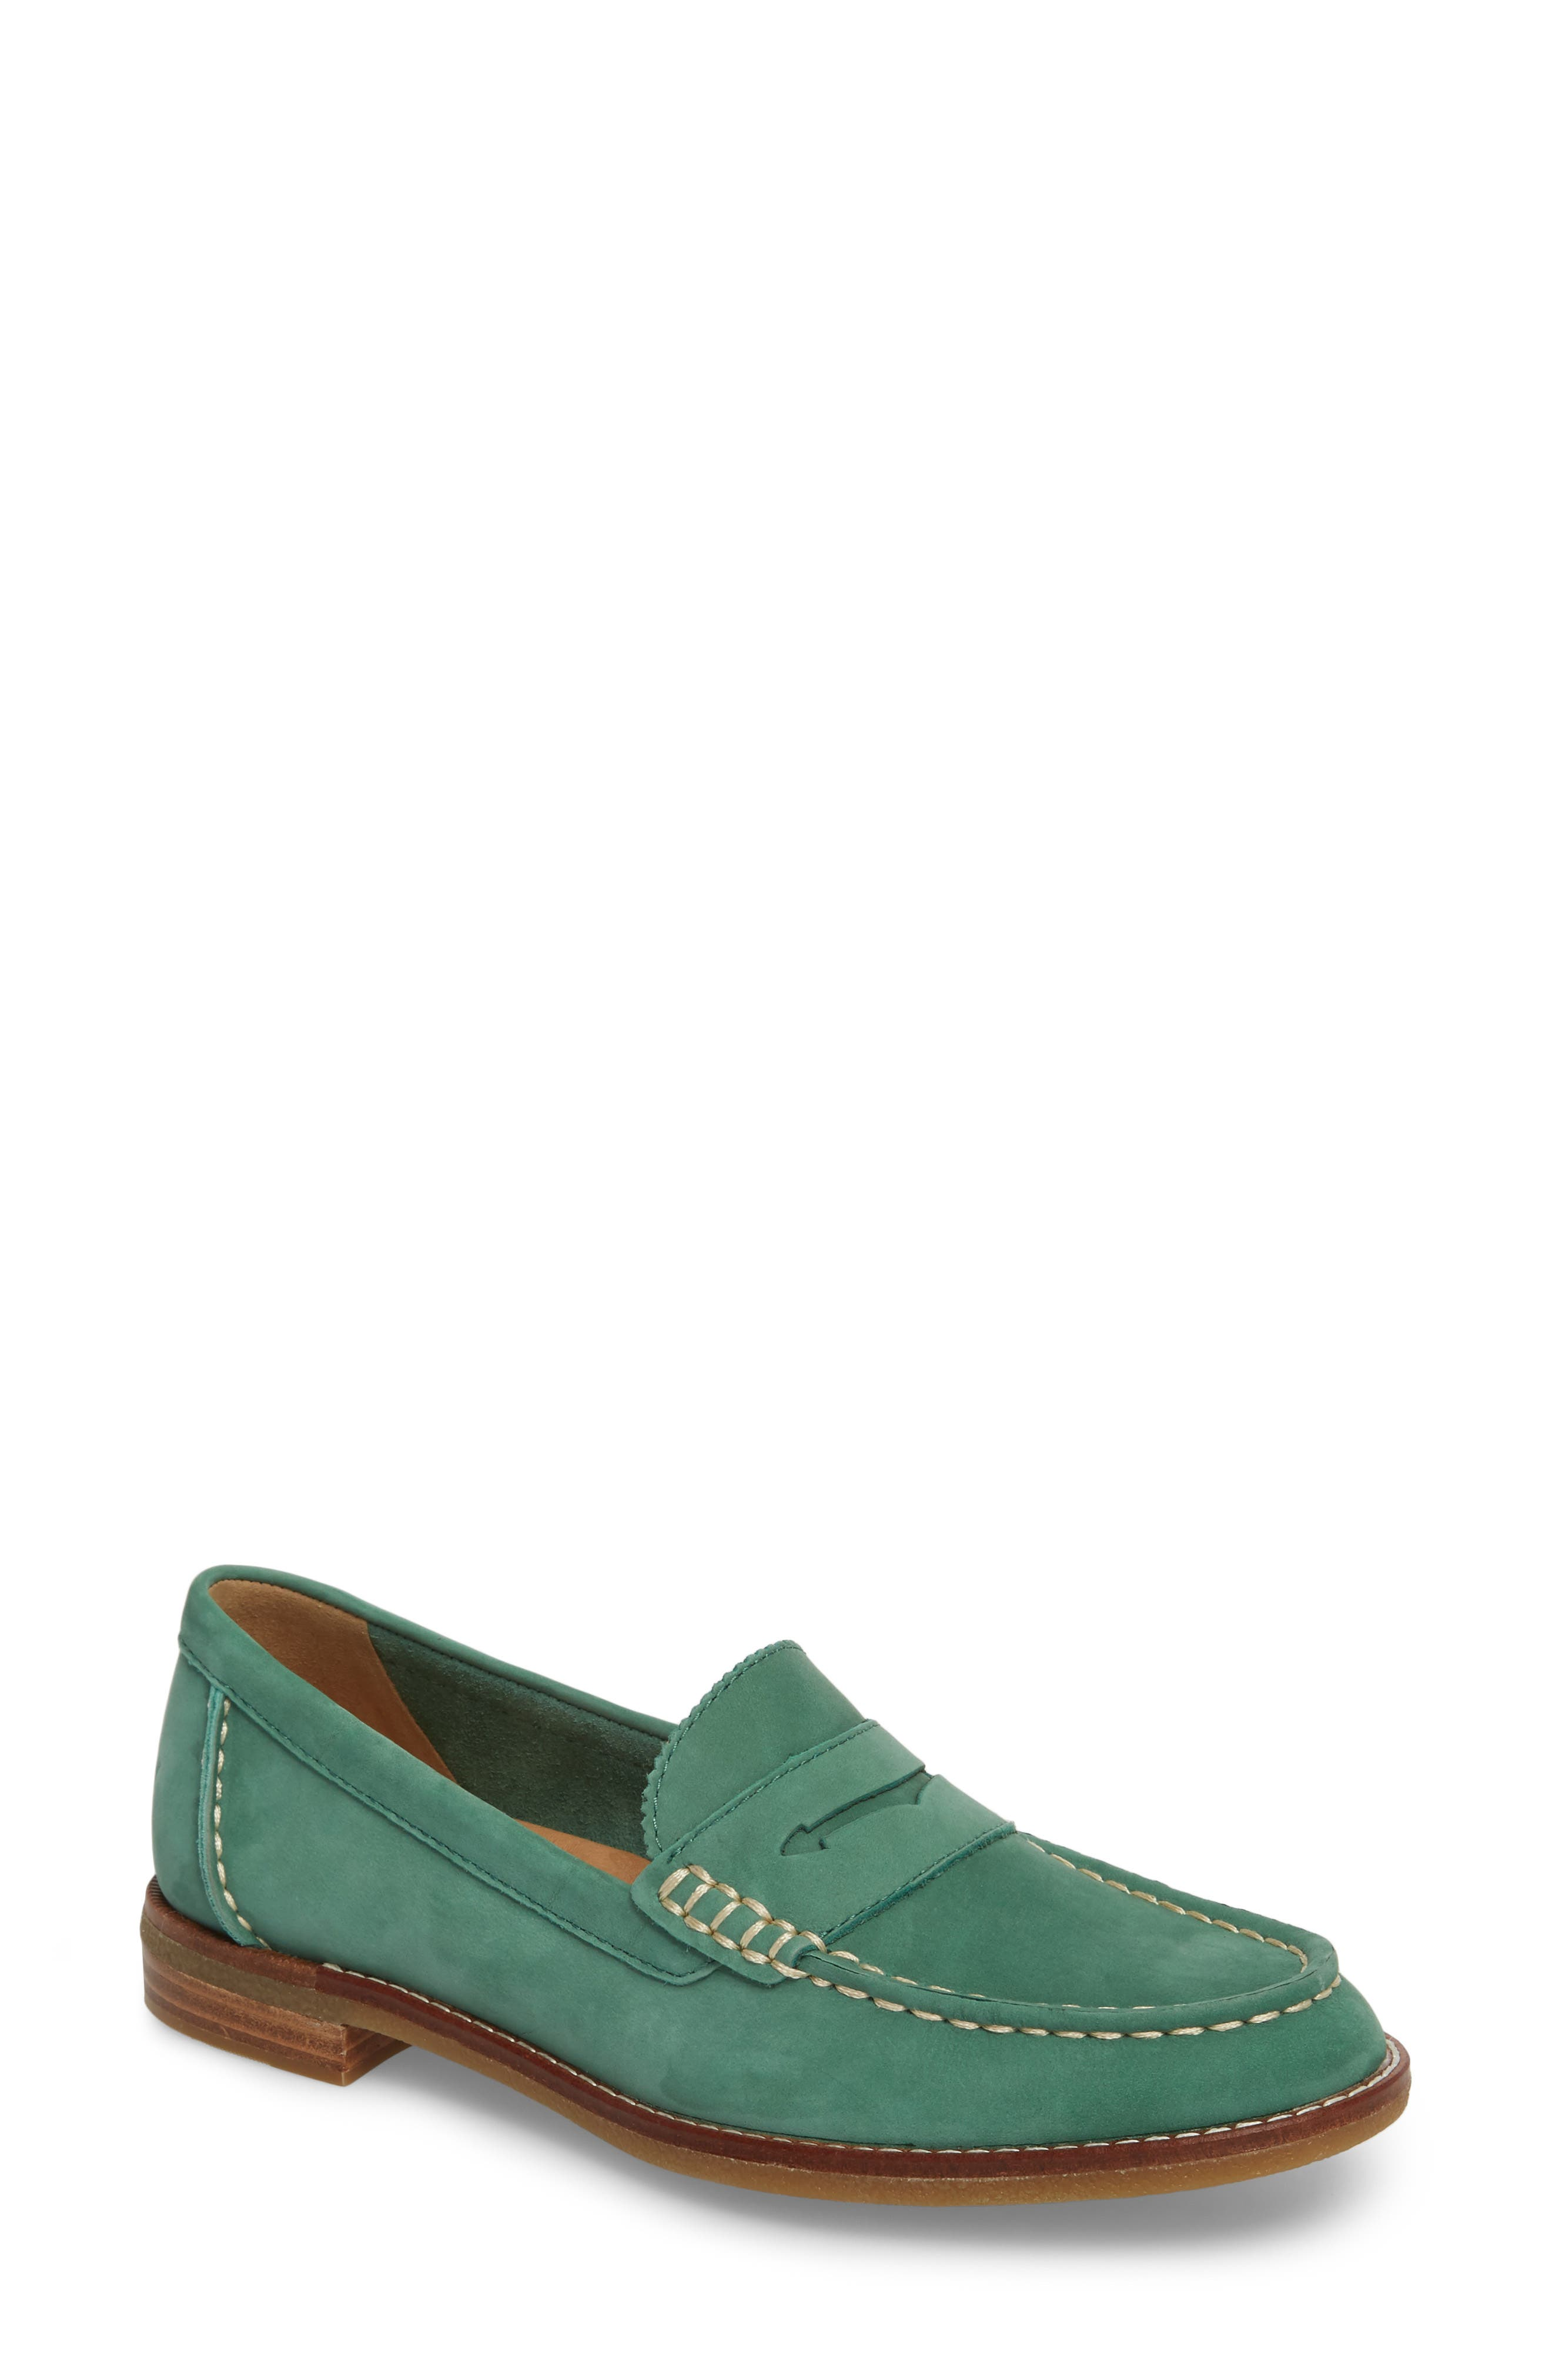 Seaport Penny Loafer,                             Main thumbnail 1, color,                             Green Leather